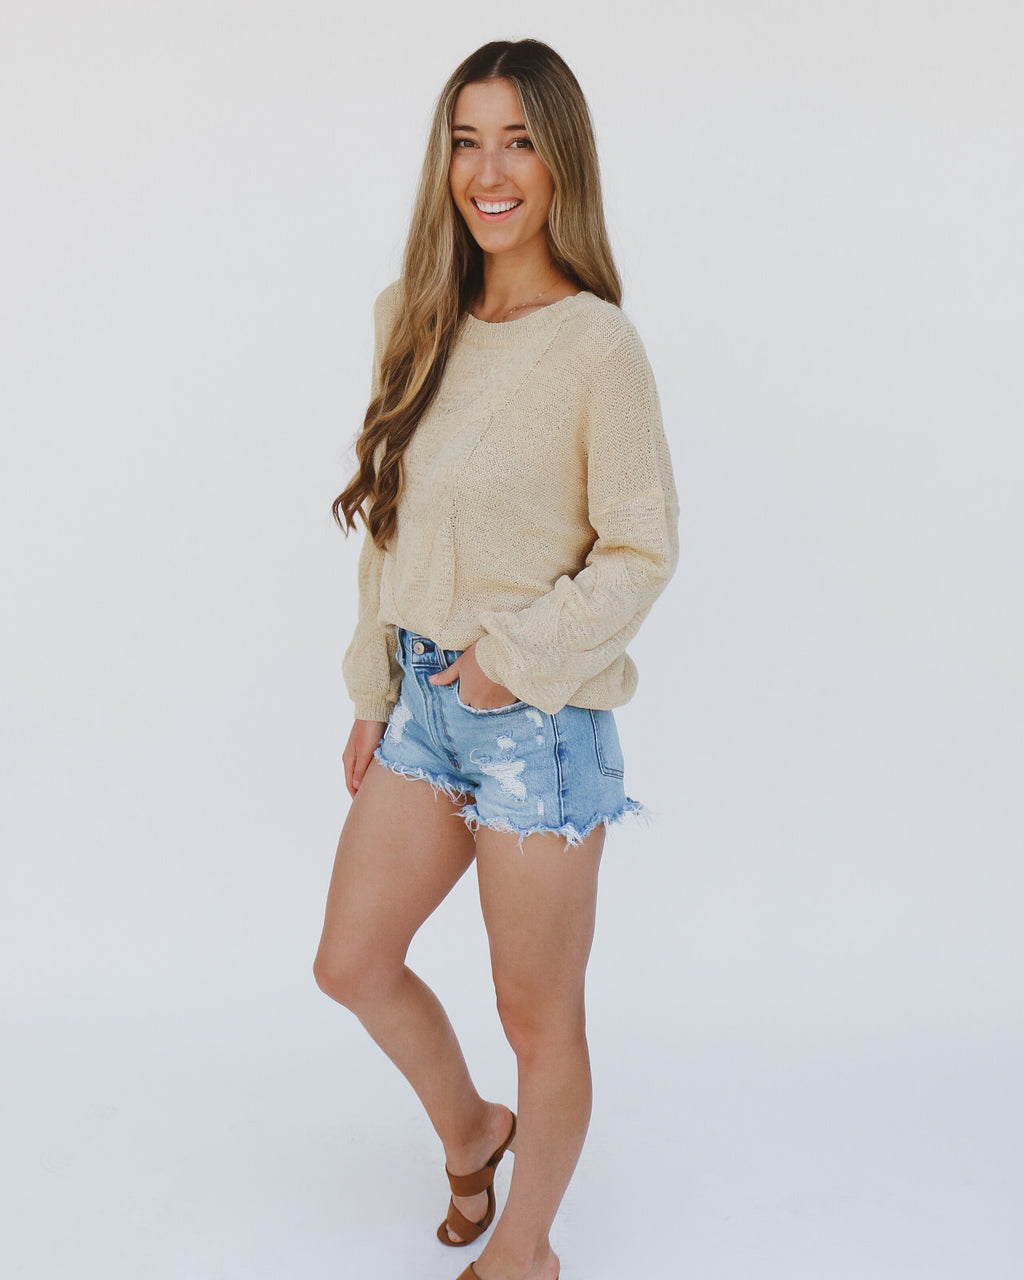 Beach Days Sweater in Yellow